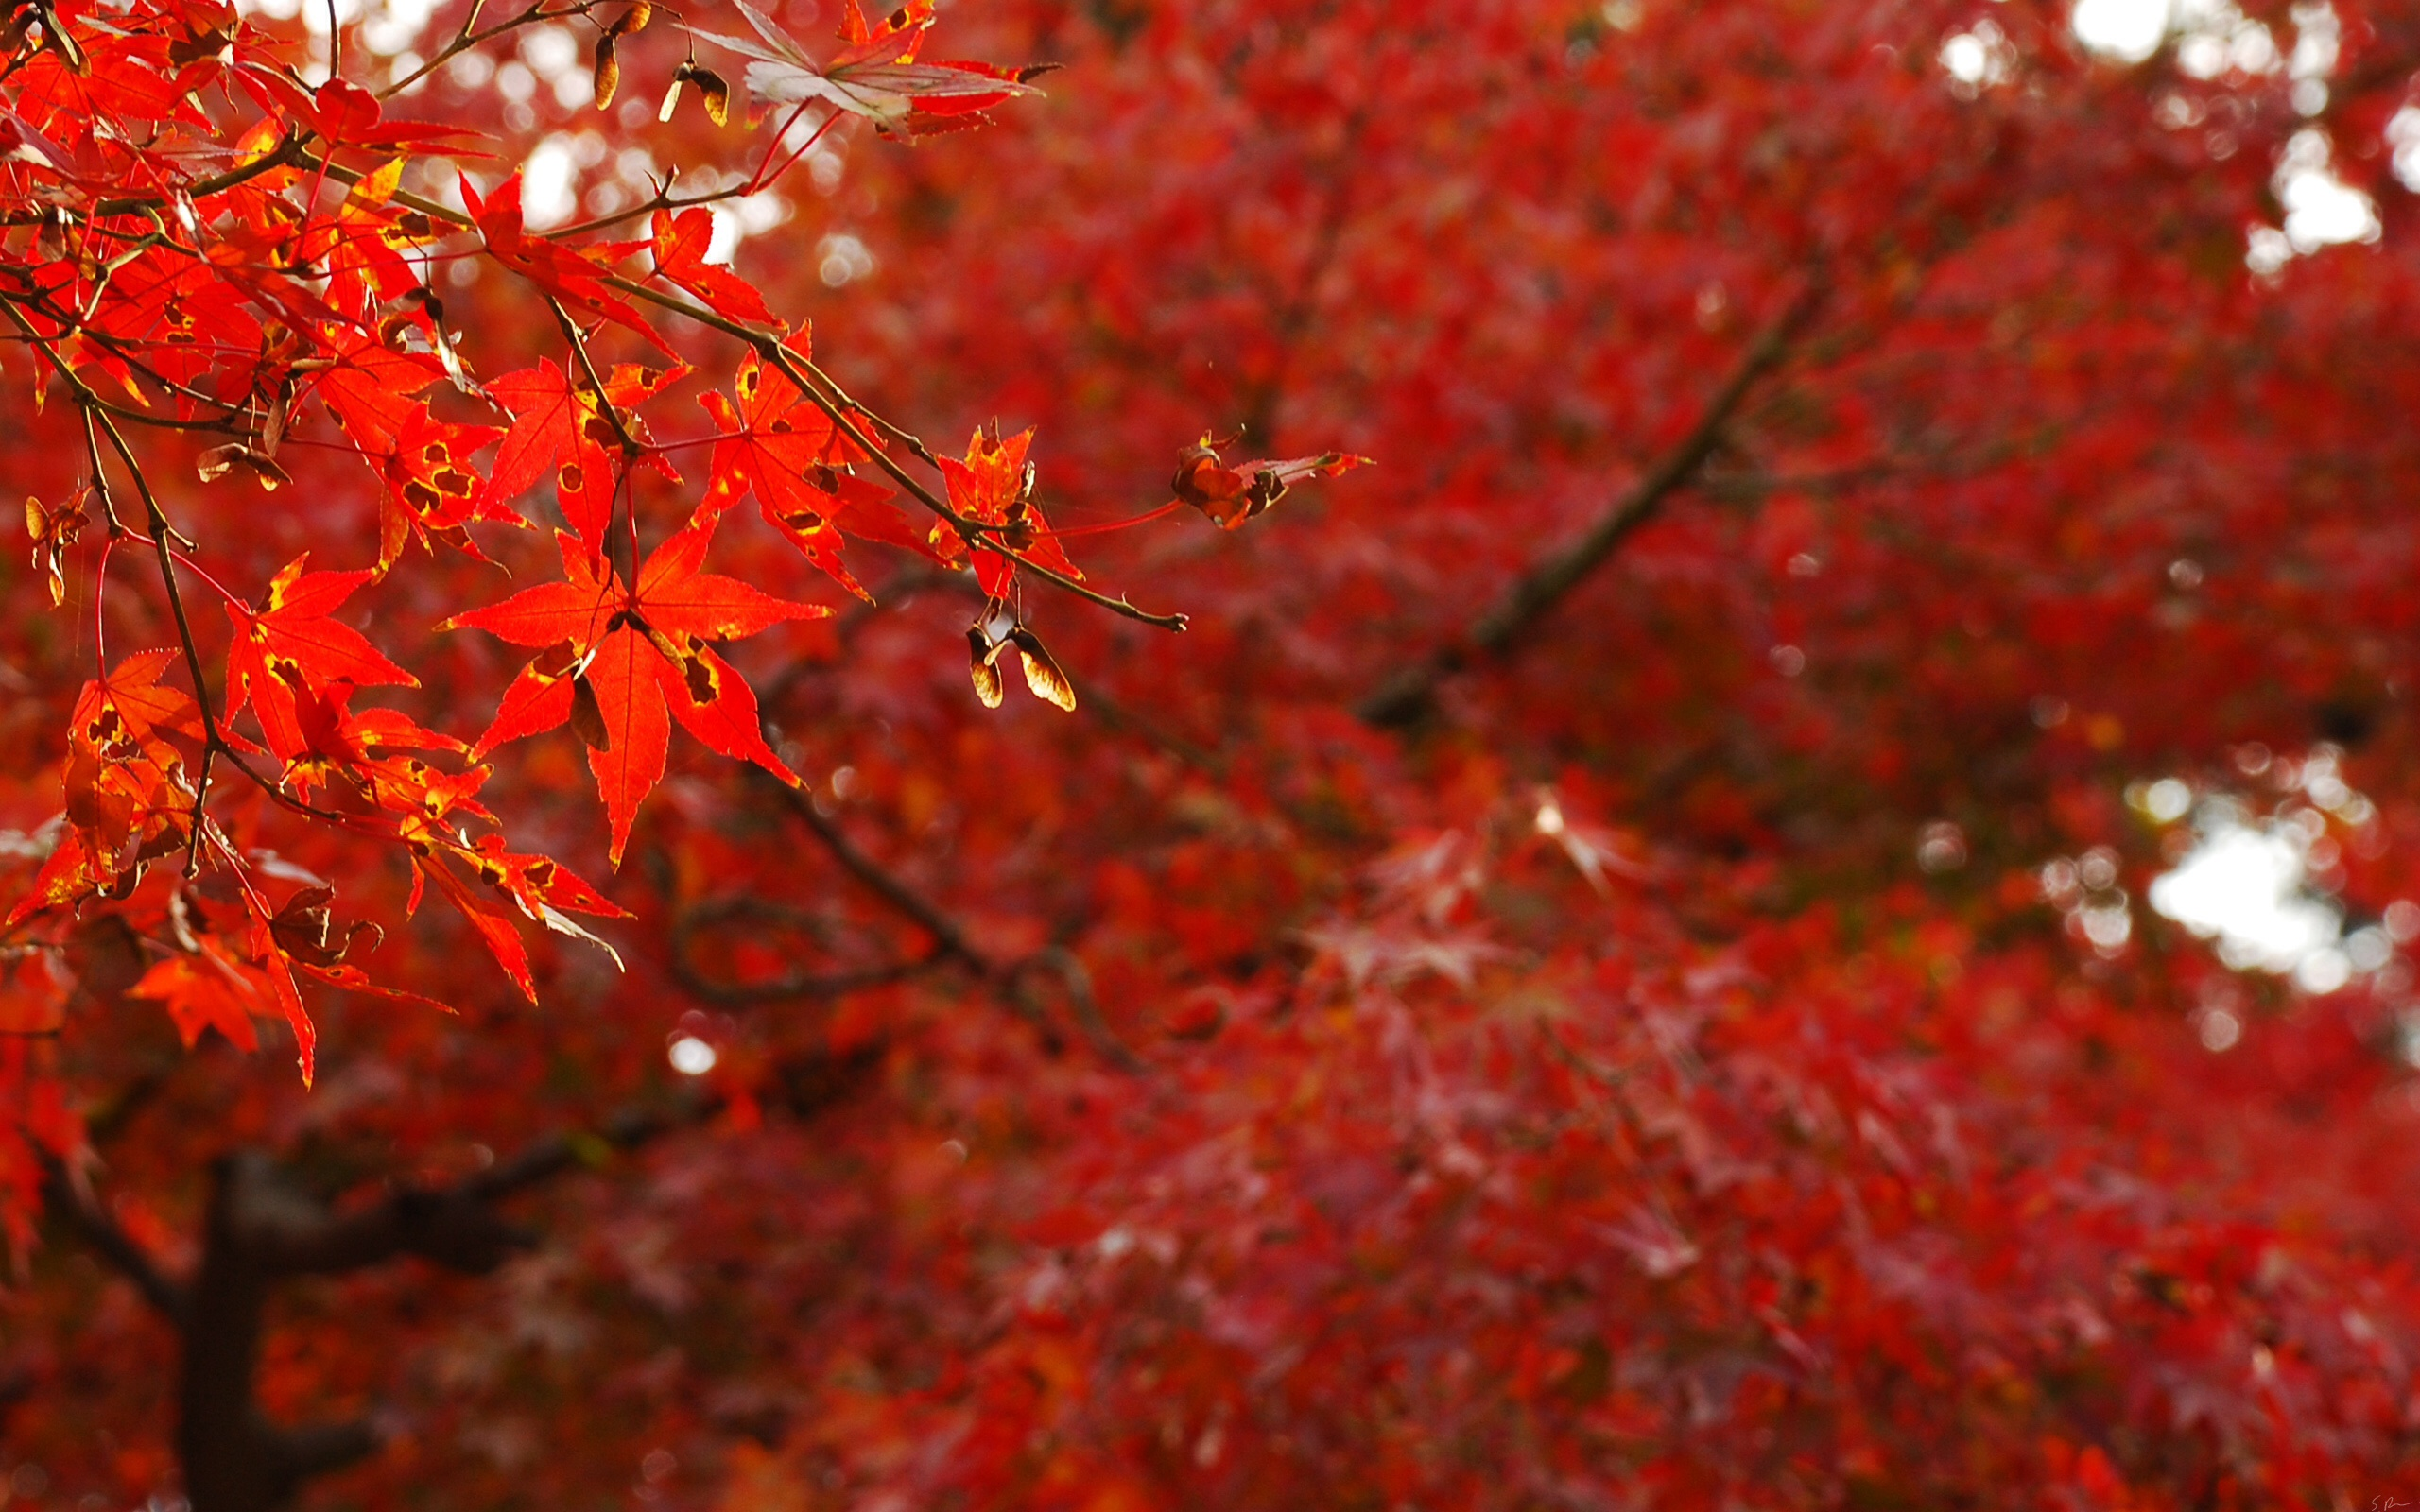 Labels Red Autumn Leaves Photography Hd Wallpapers For: Red Leaves Stock Photos